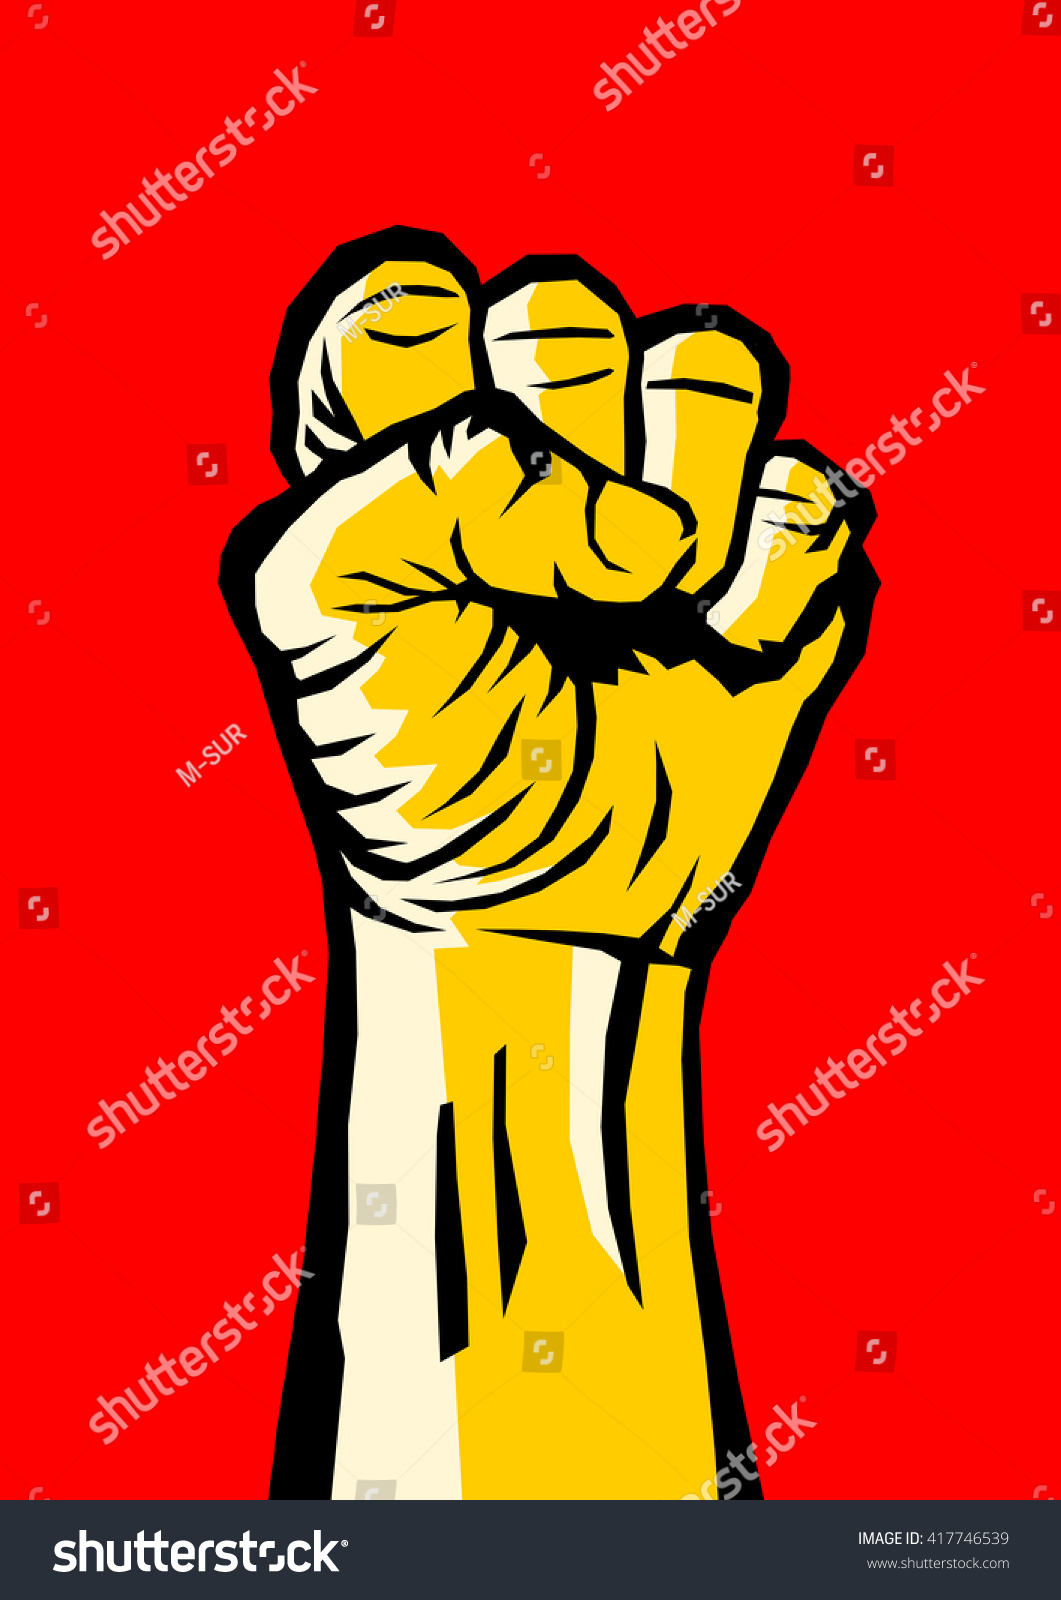 Raised Clenched Fist Symbol Revolution Uprising Stock Vector